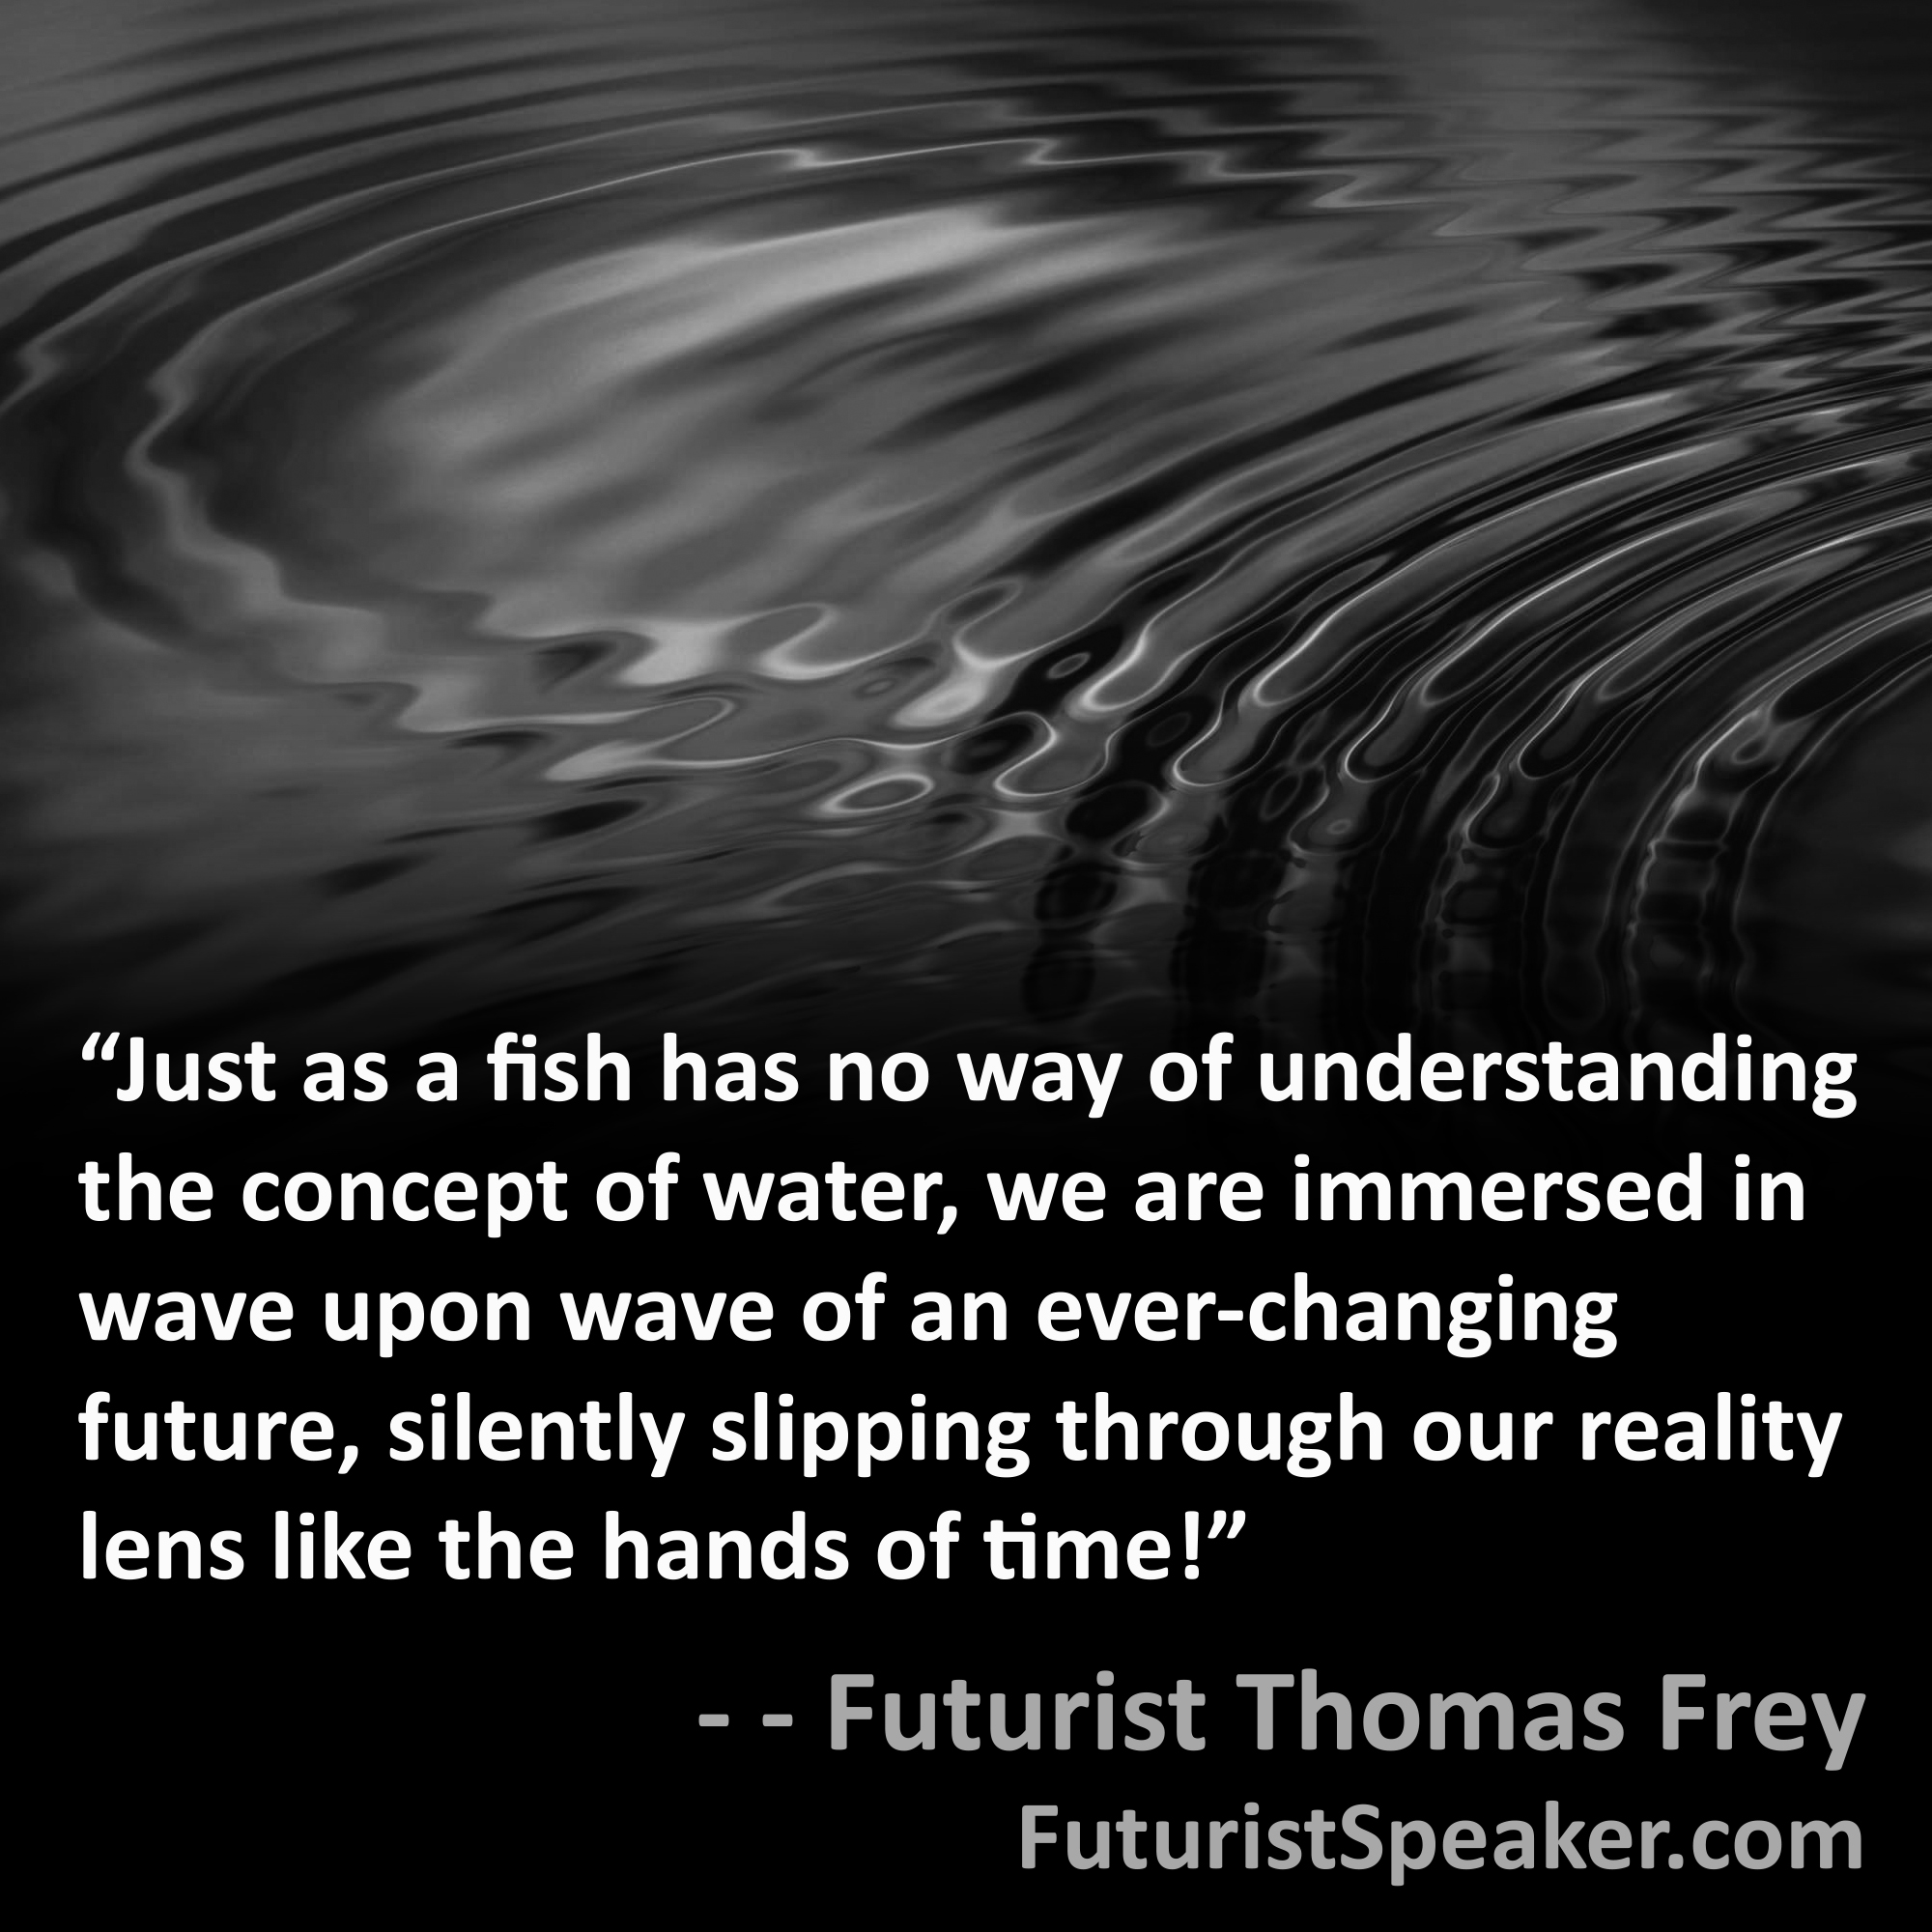 Thomas Frey Futurist Speaker Famous Quote: Just as a fish has no way of understanding the concept of water, we are immersed in wave upon wave of an ever-changing future, silently slipping through our reality lens like the hands of time.